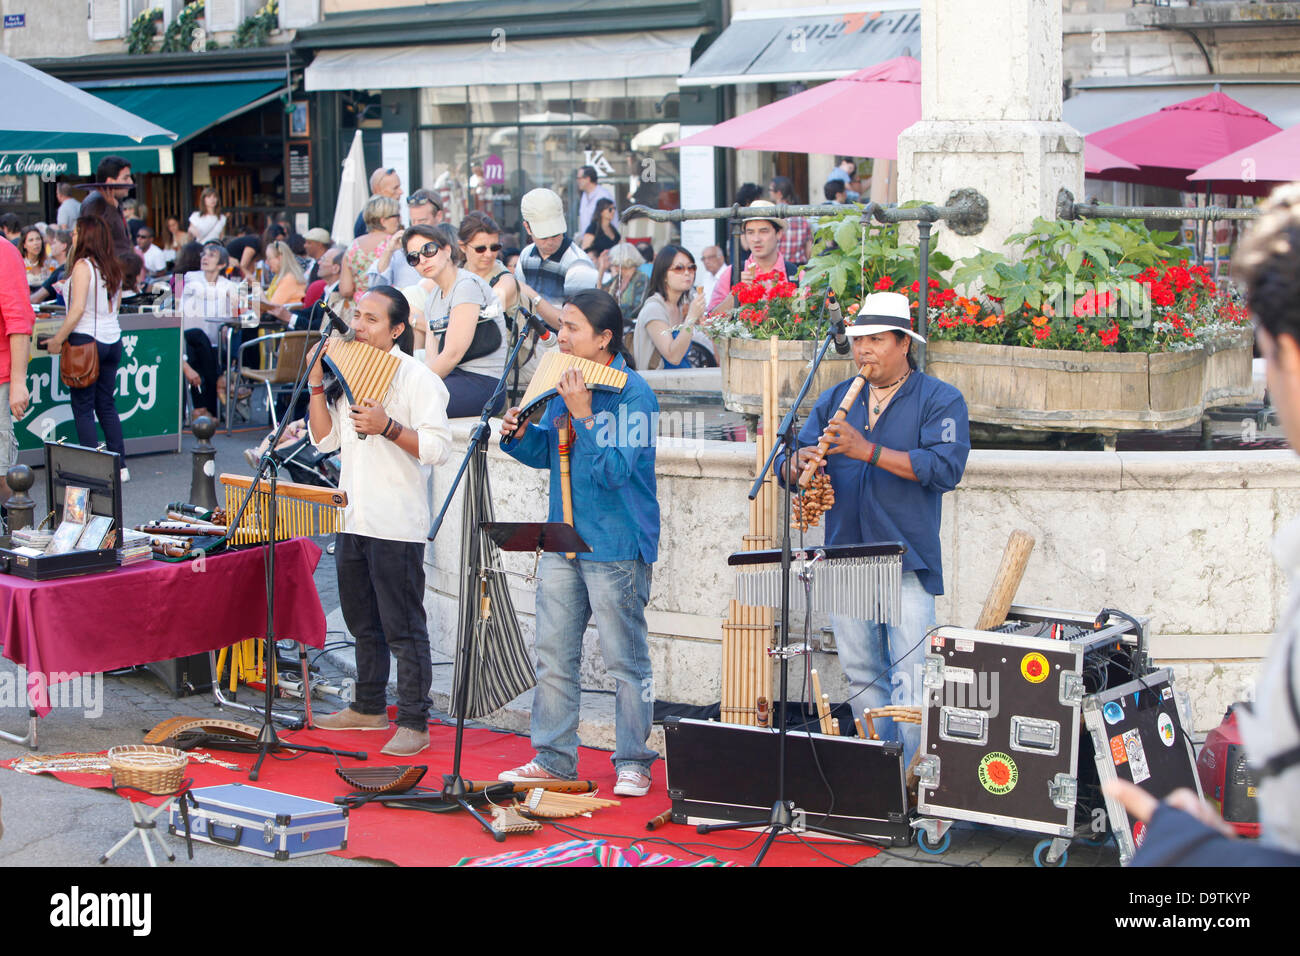 Street musicians from South America performing on streets of old town (downtown) Geneva during traditional multicultural - Stock Image